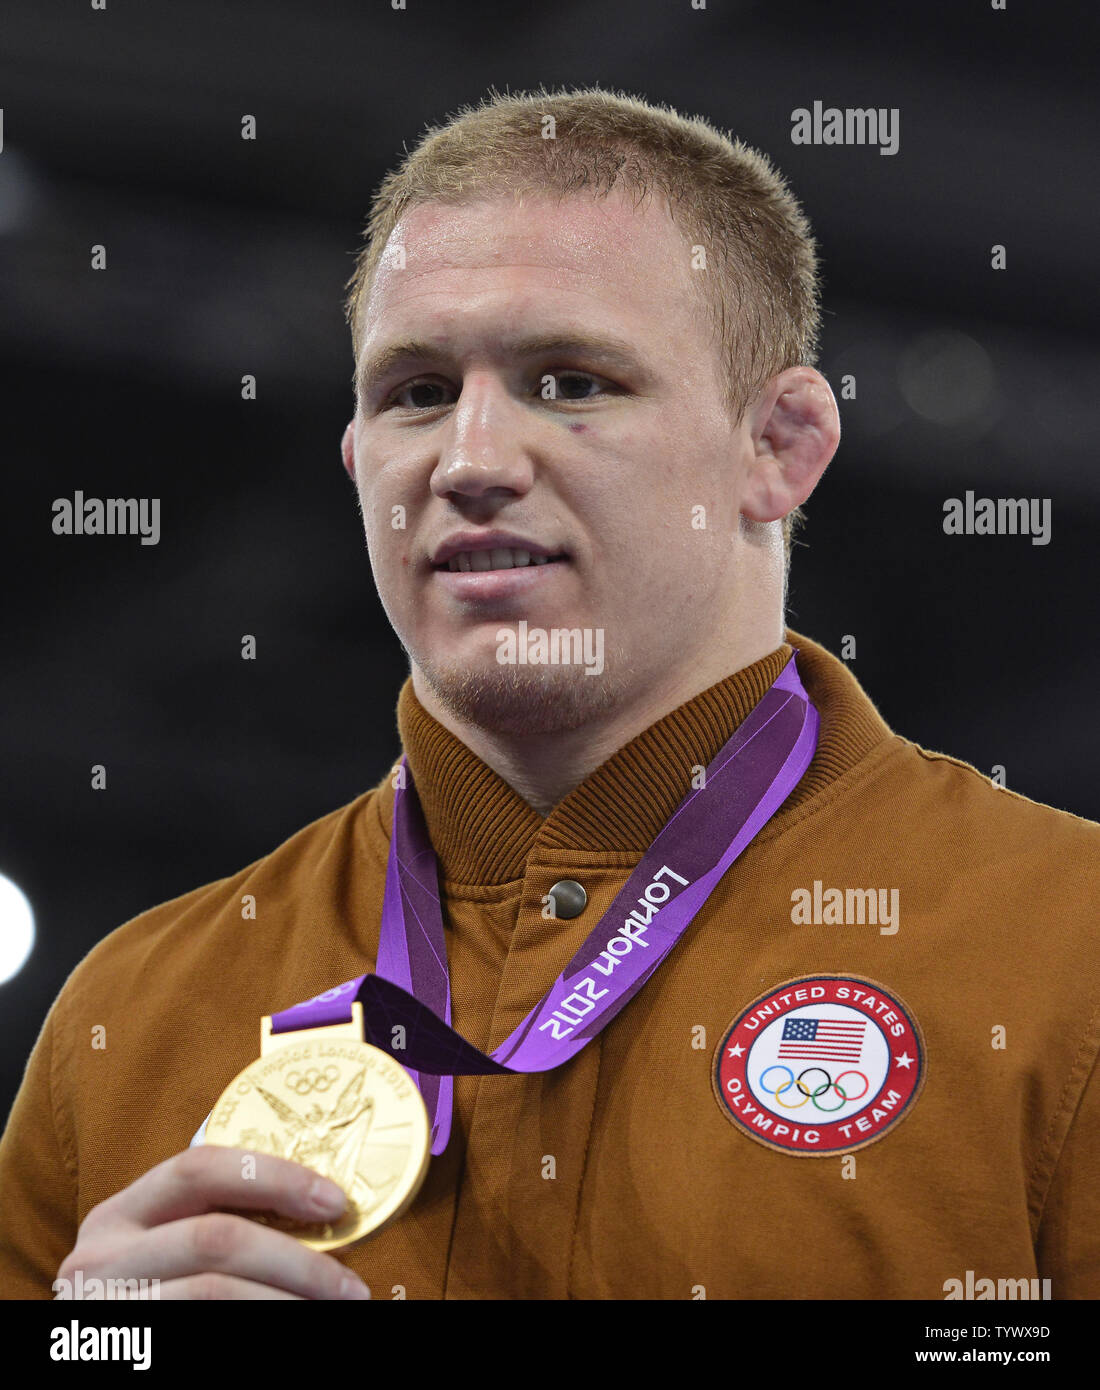 Jacob Stephen Varner of the United States of America shows off the Gold Medal he earned in the Men's 96kg Freestyle Wrestling at the London 2012 Summer Olympics on August 12, 2012 in London.   UPI/Ron Sachs - Stock Image